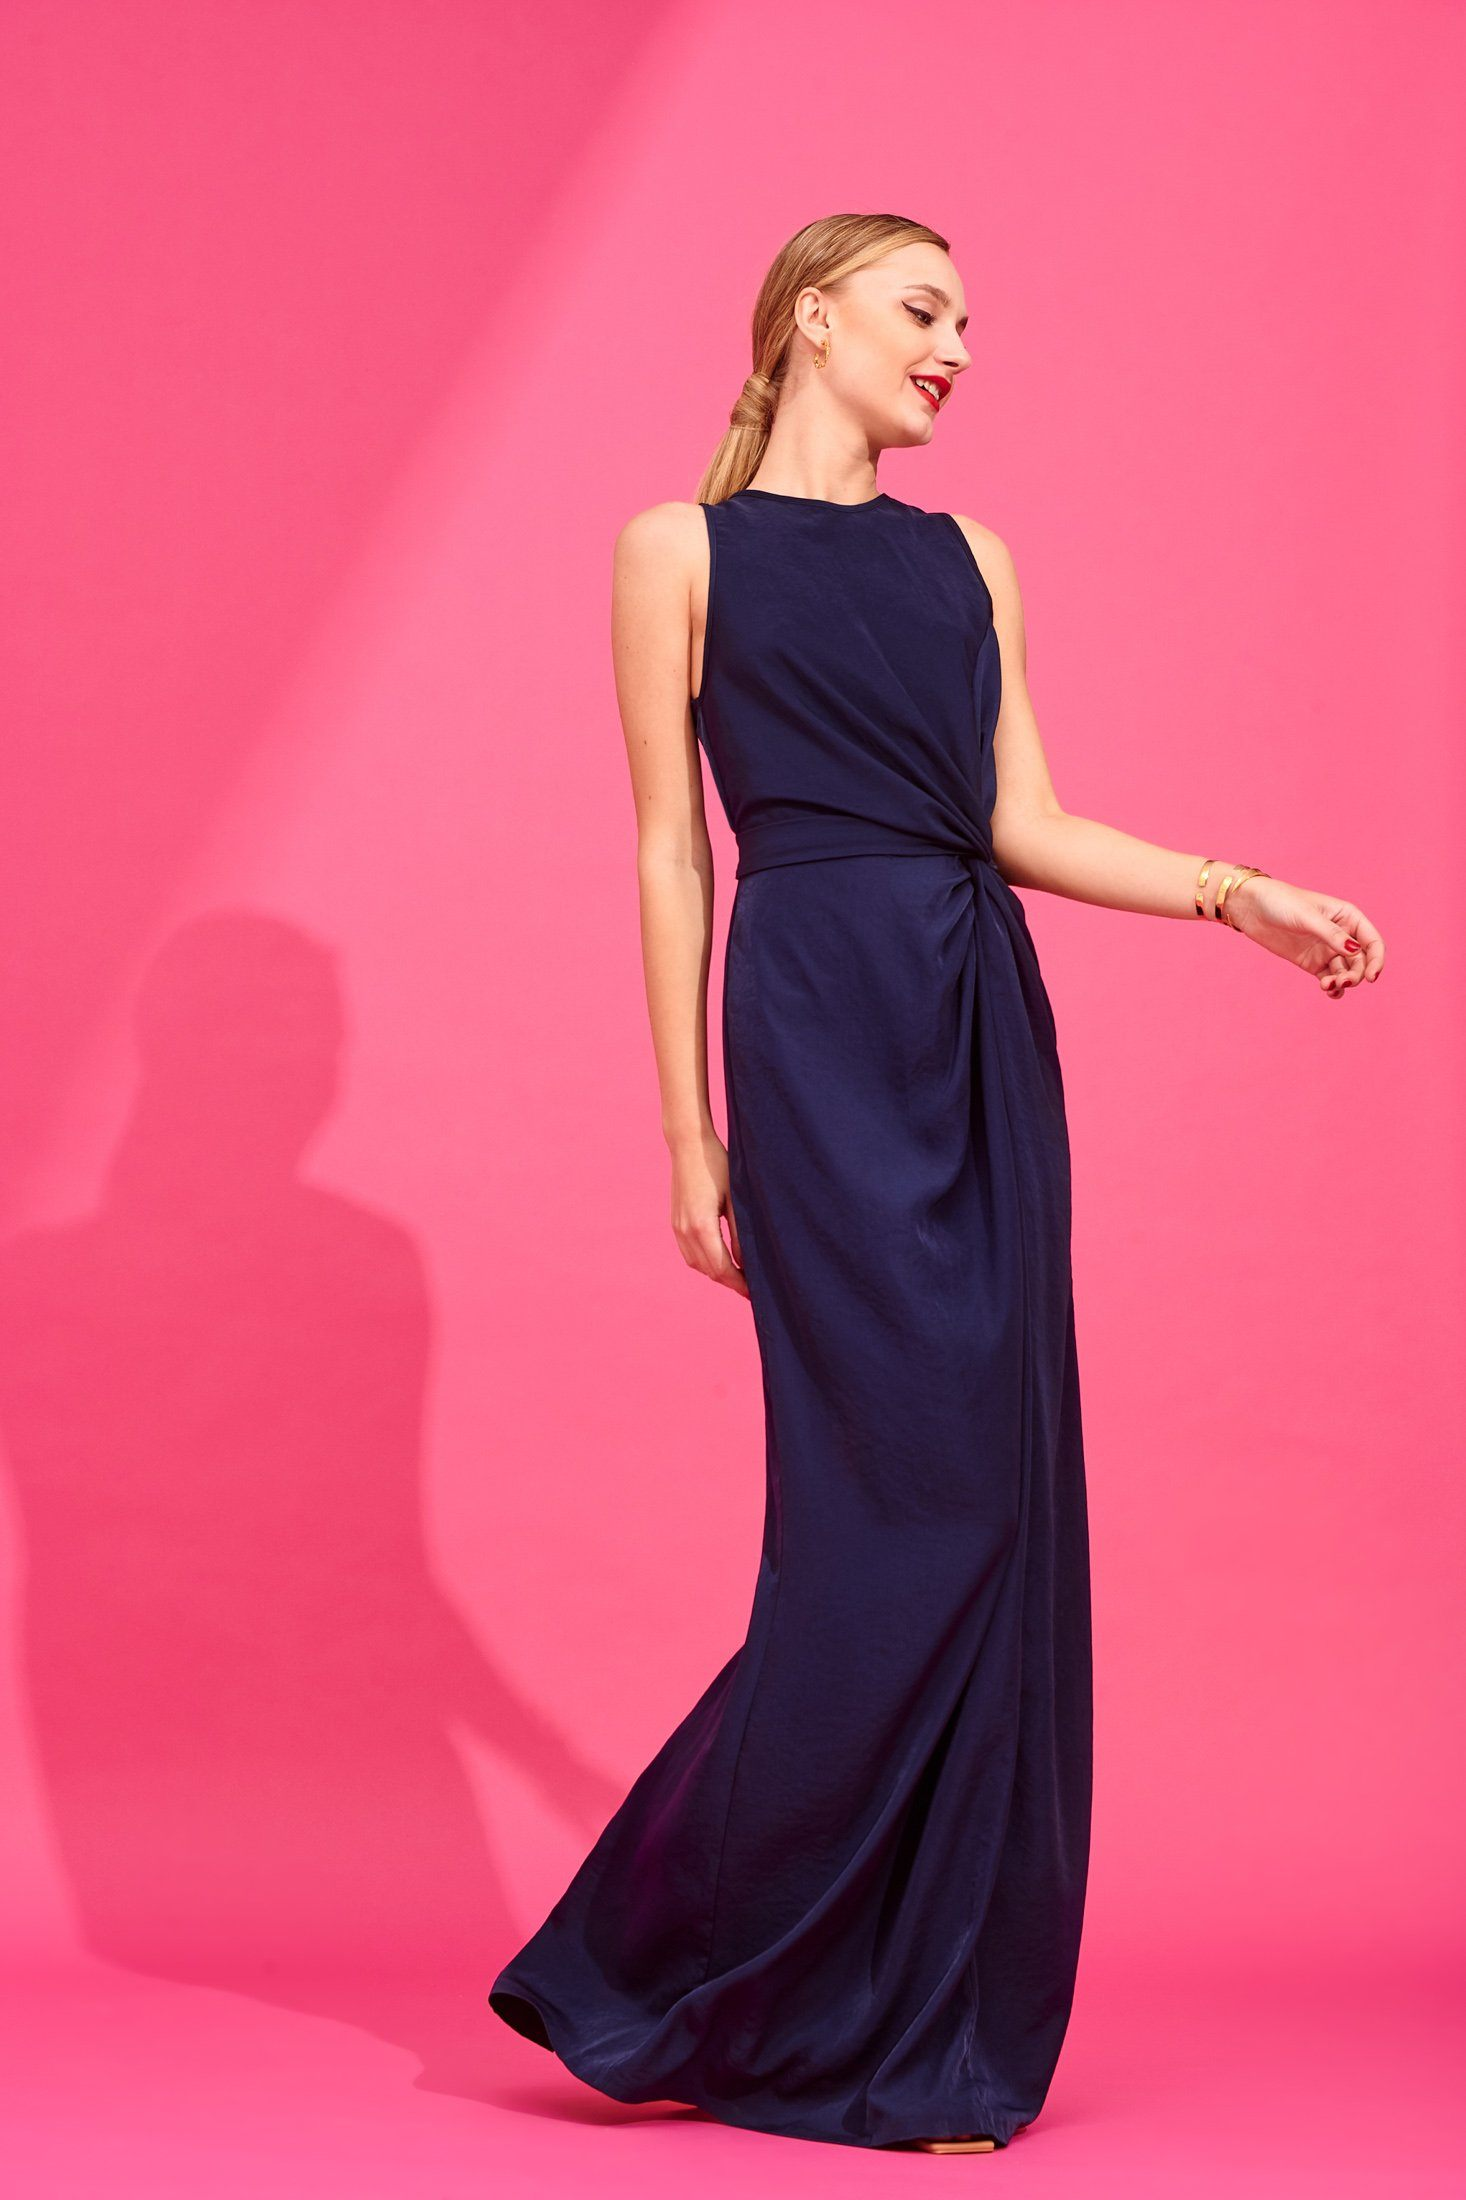 Estelle Dress (Blue) Dresses Karavan Clothing